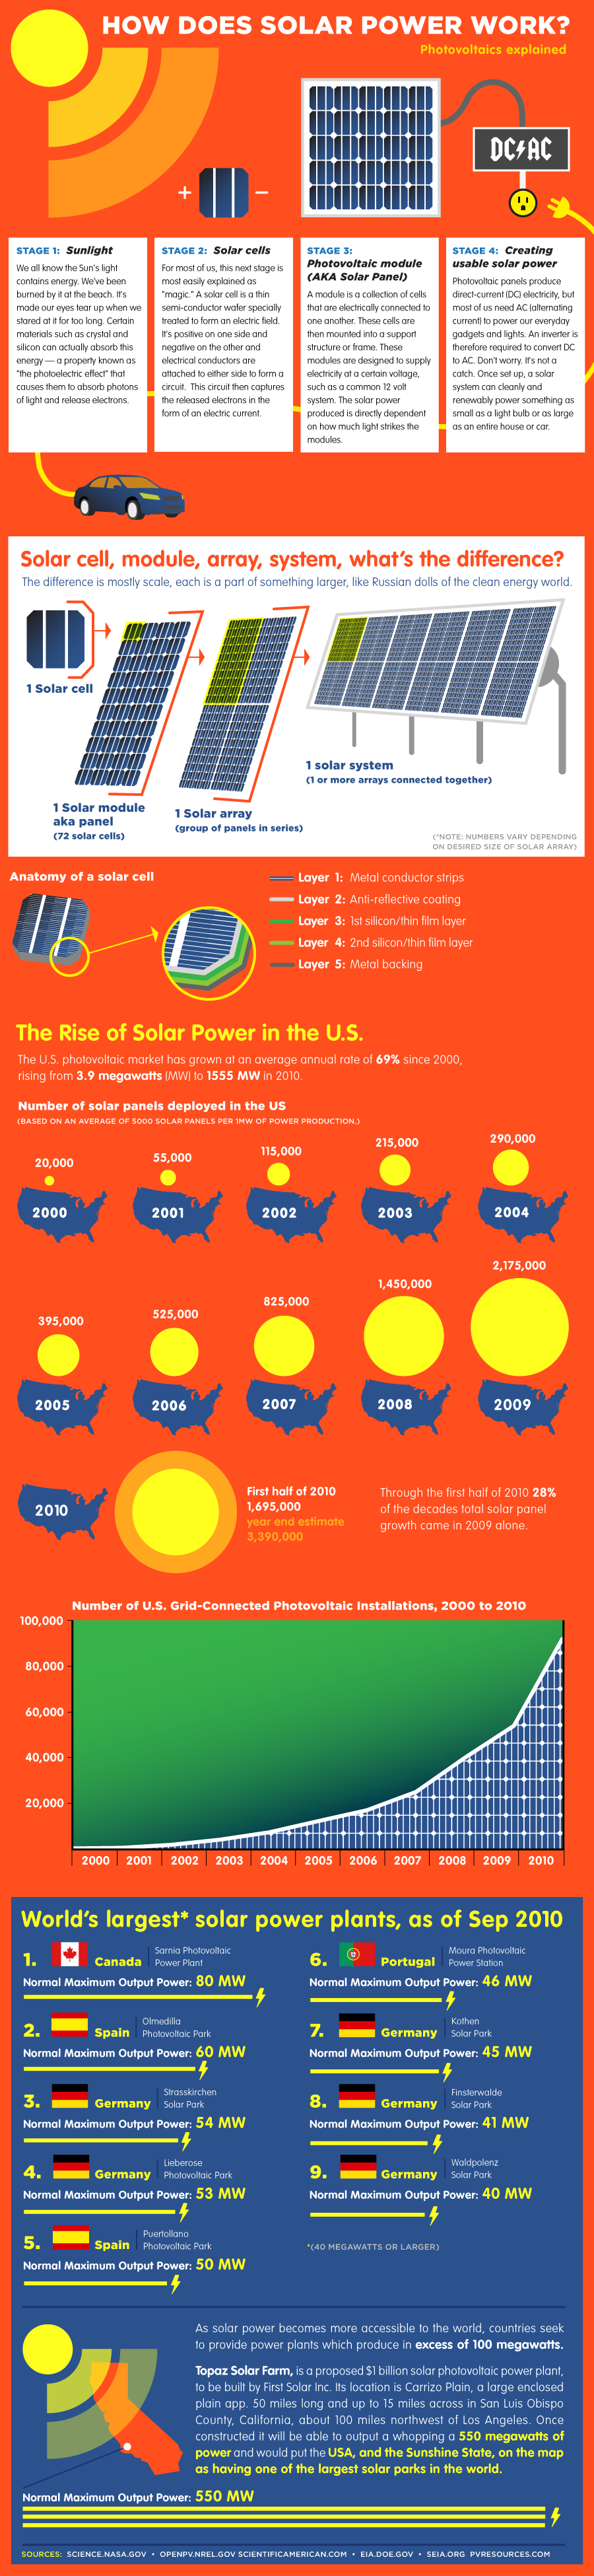 how-solar-power-works-infographic.png